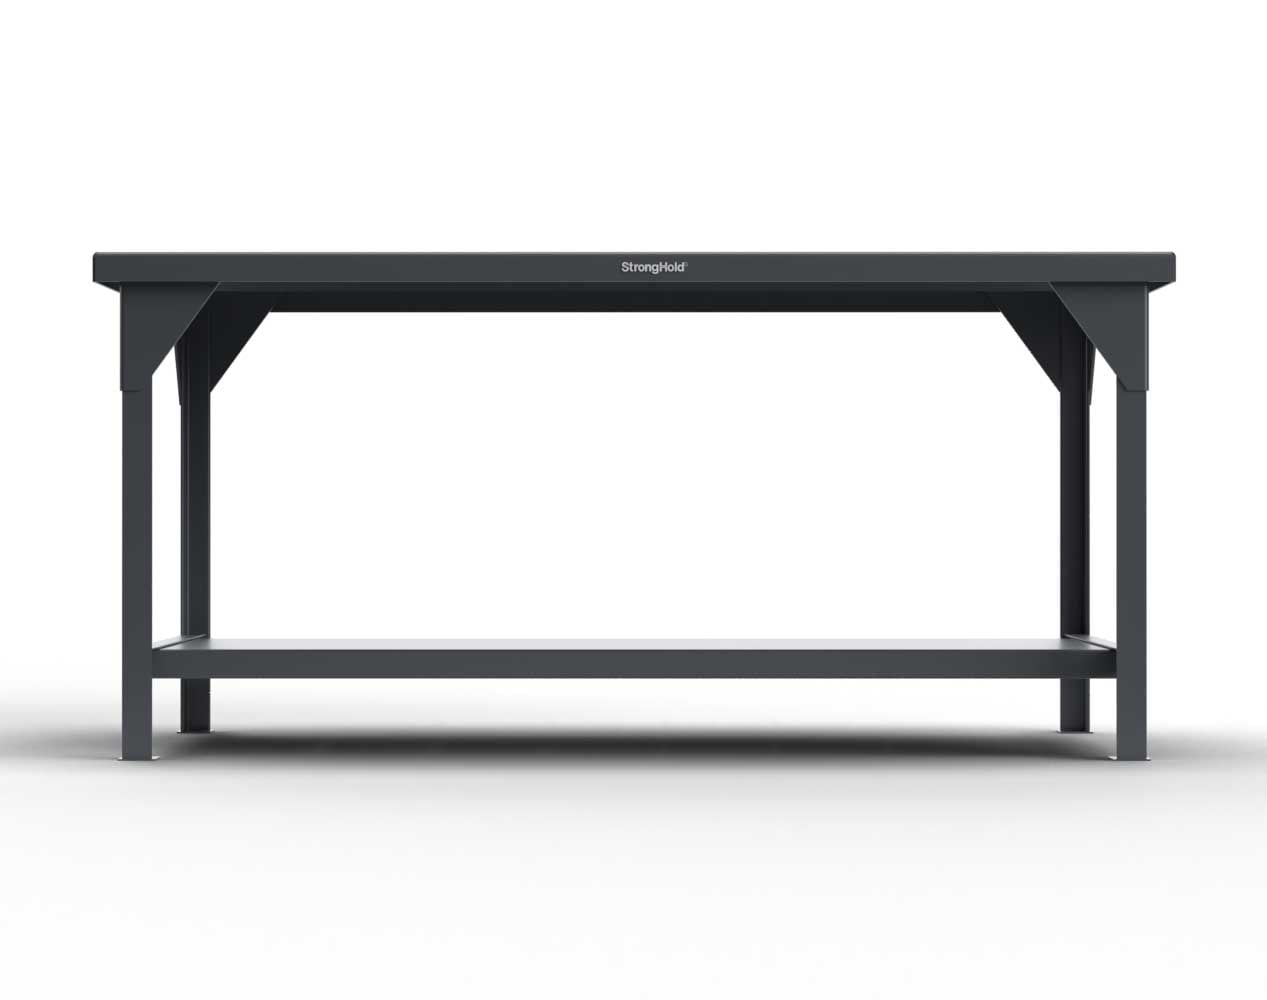 Extra Heavy Duty 7 GA Shop Table with UHMW Top, 1 Shelf – 48 In. W x 30 In. D x 34 In. H